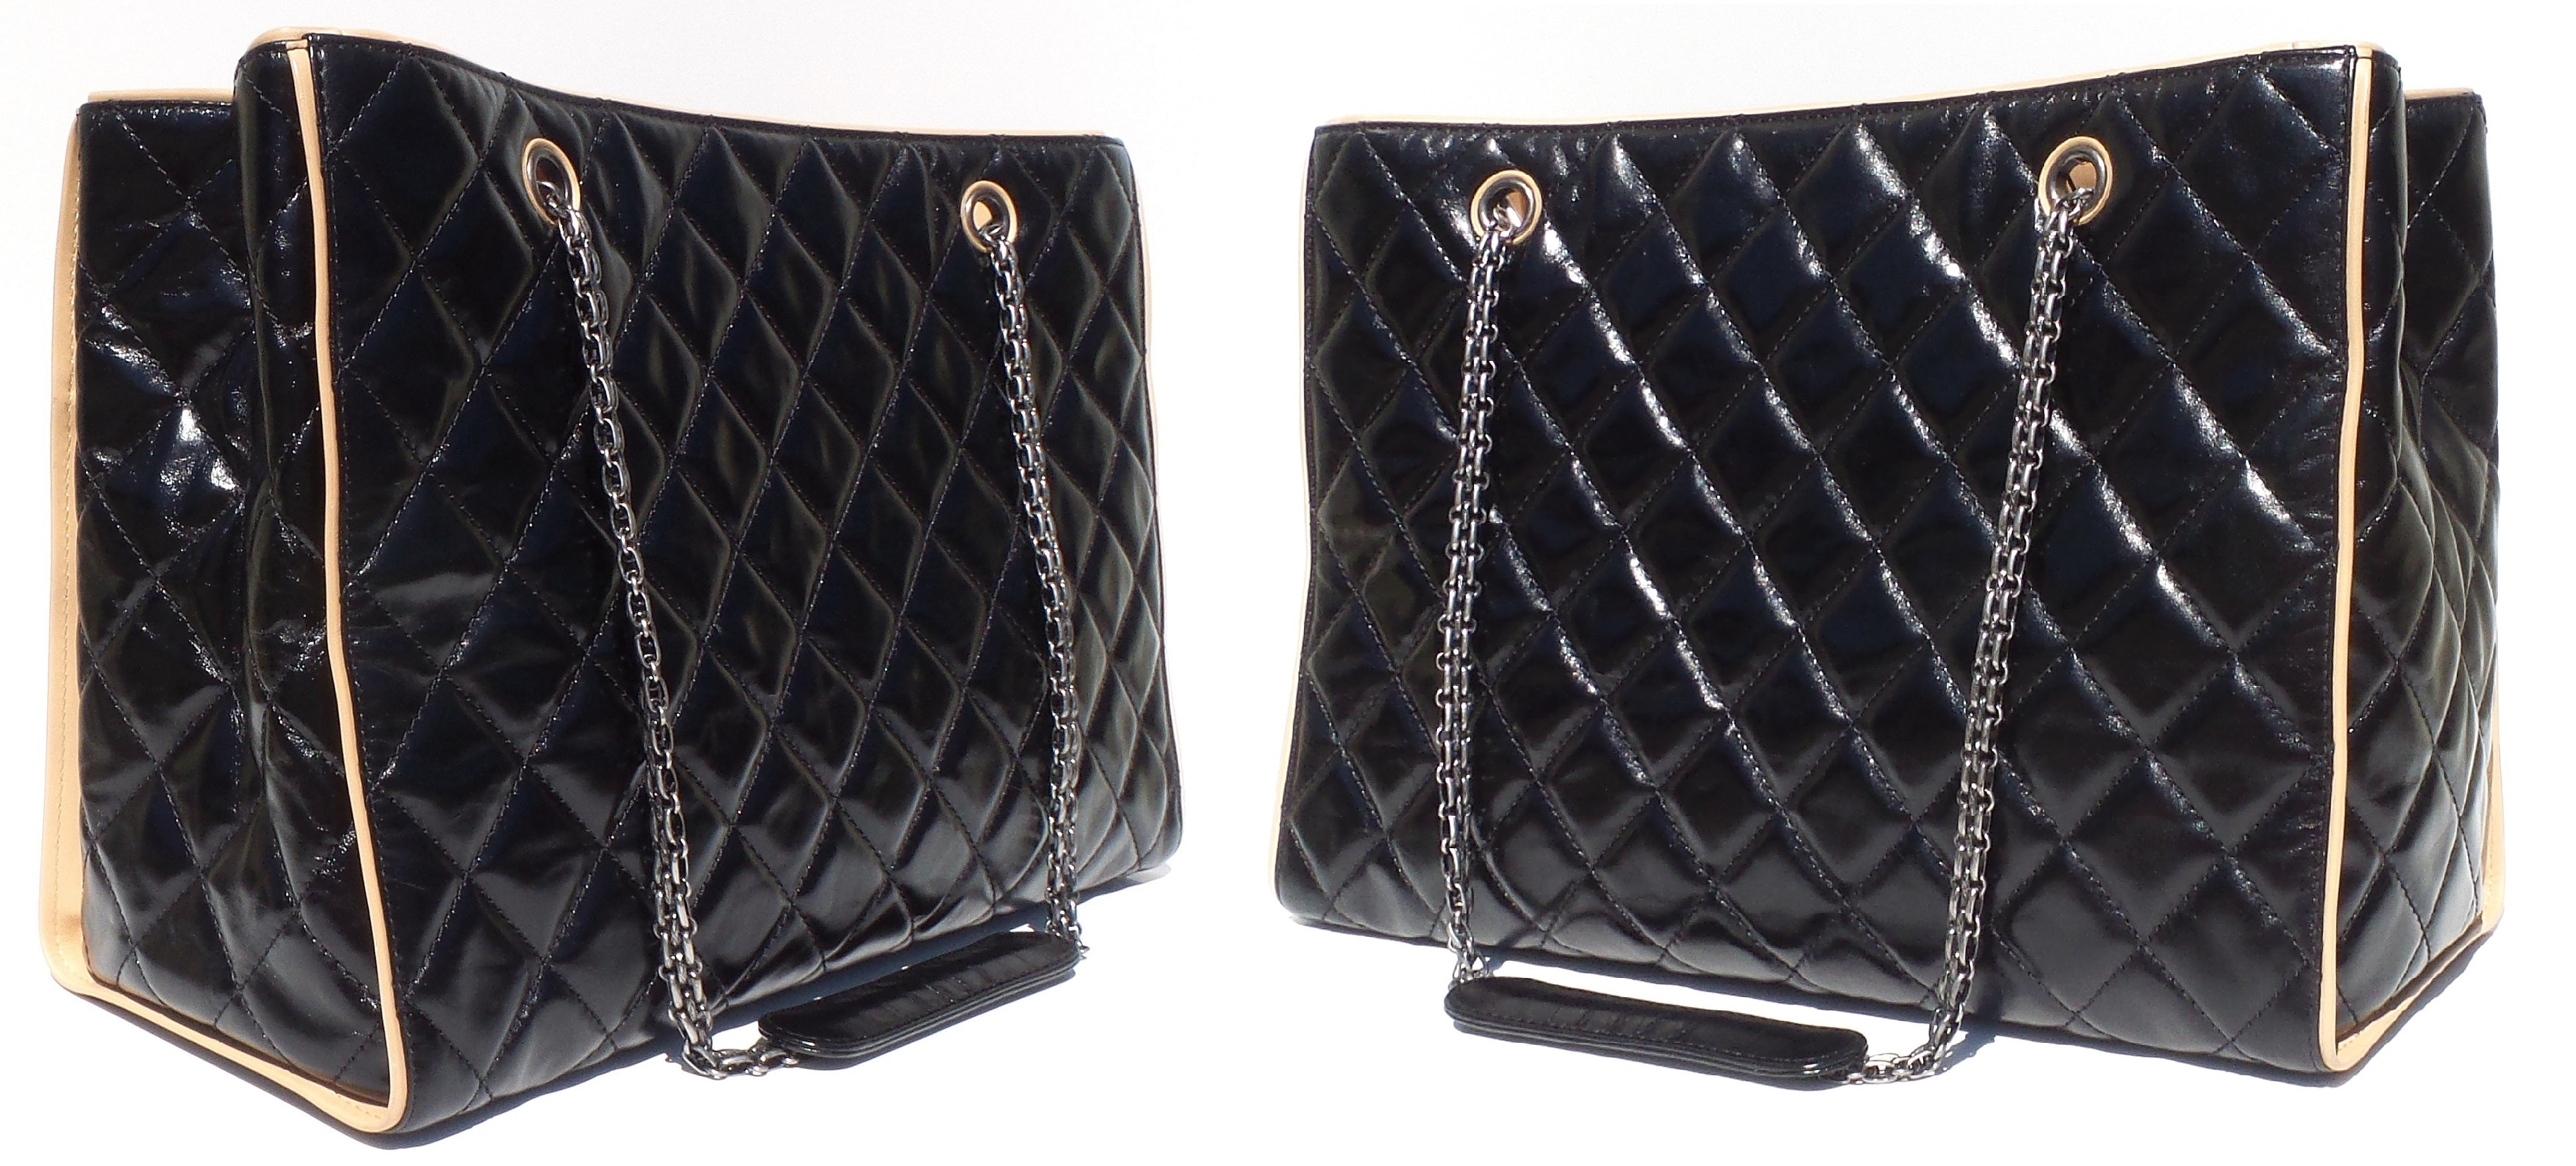 051529100ee2 CHANEL Black Glazed Quilted Leather Beige 2.55 Reissue Grand Shopping Tote  Bag